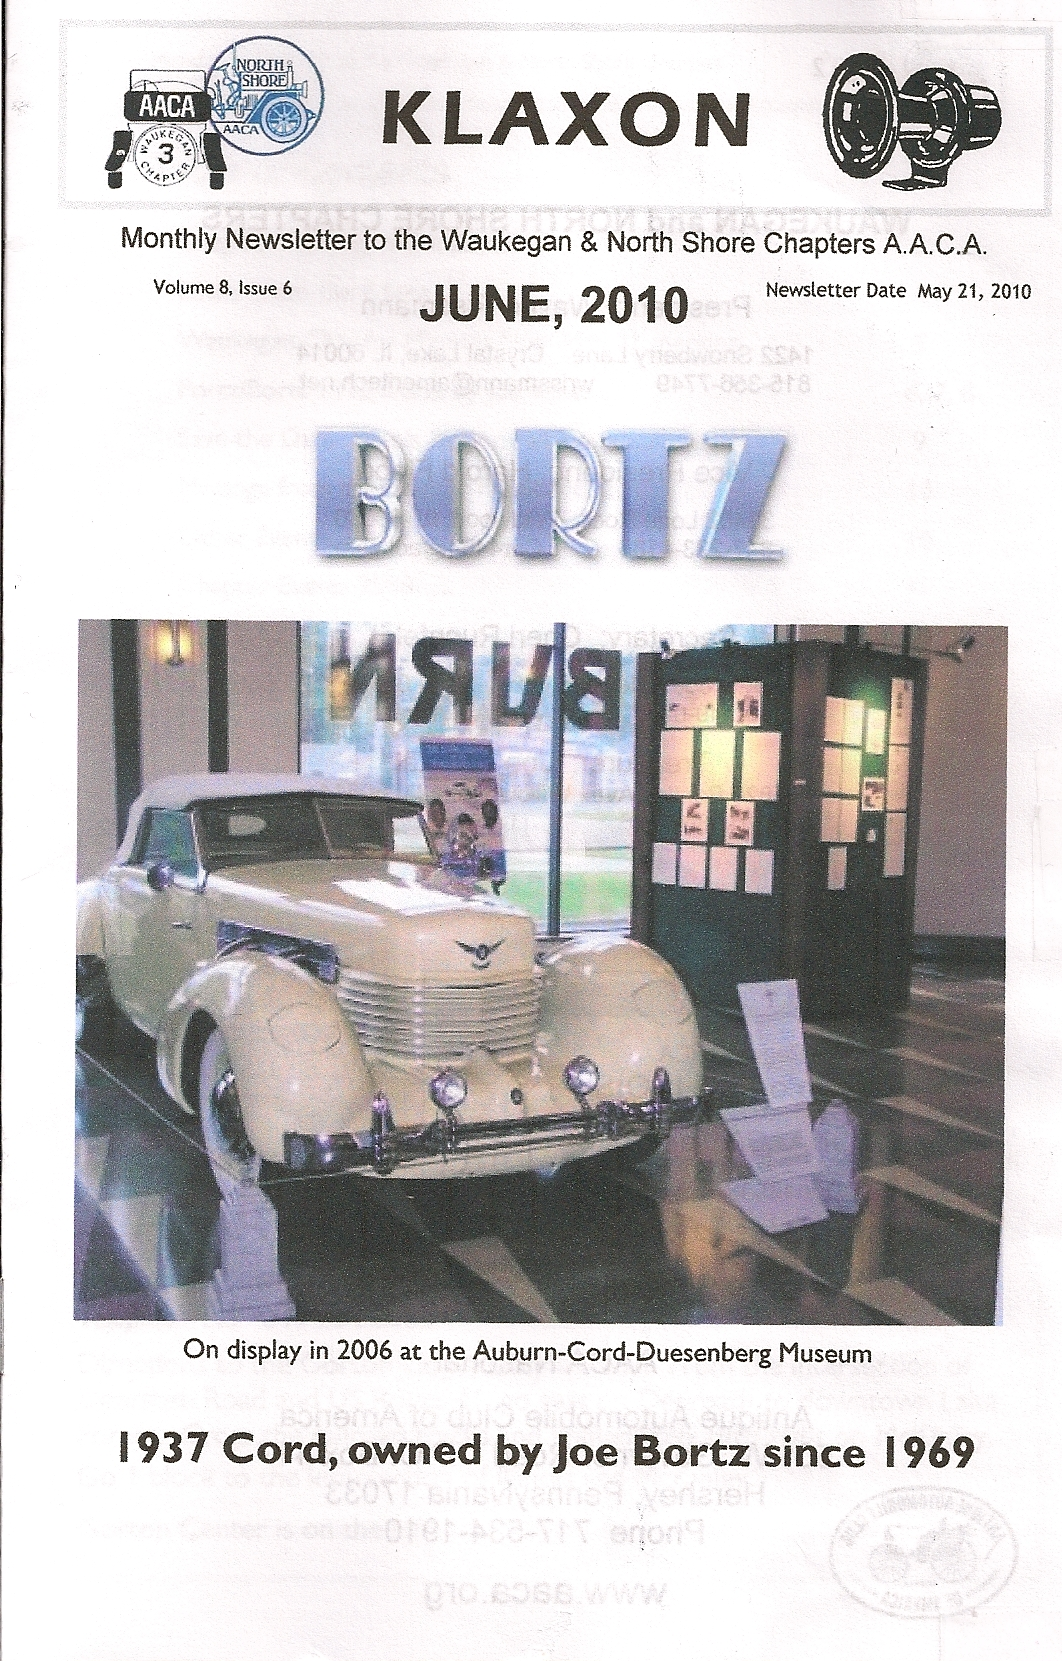 1937 Cord by Joe Bortz